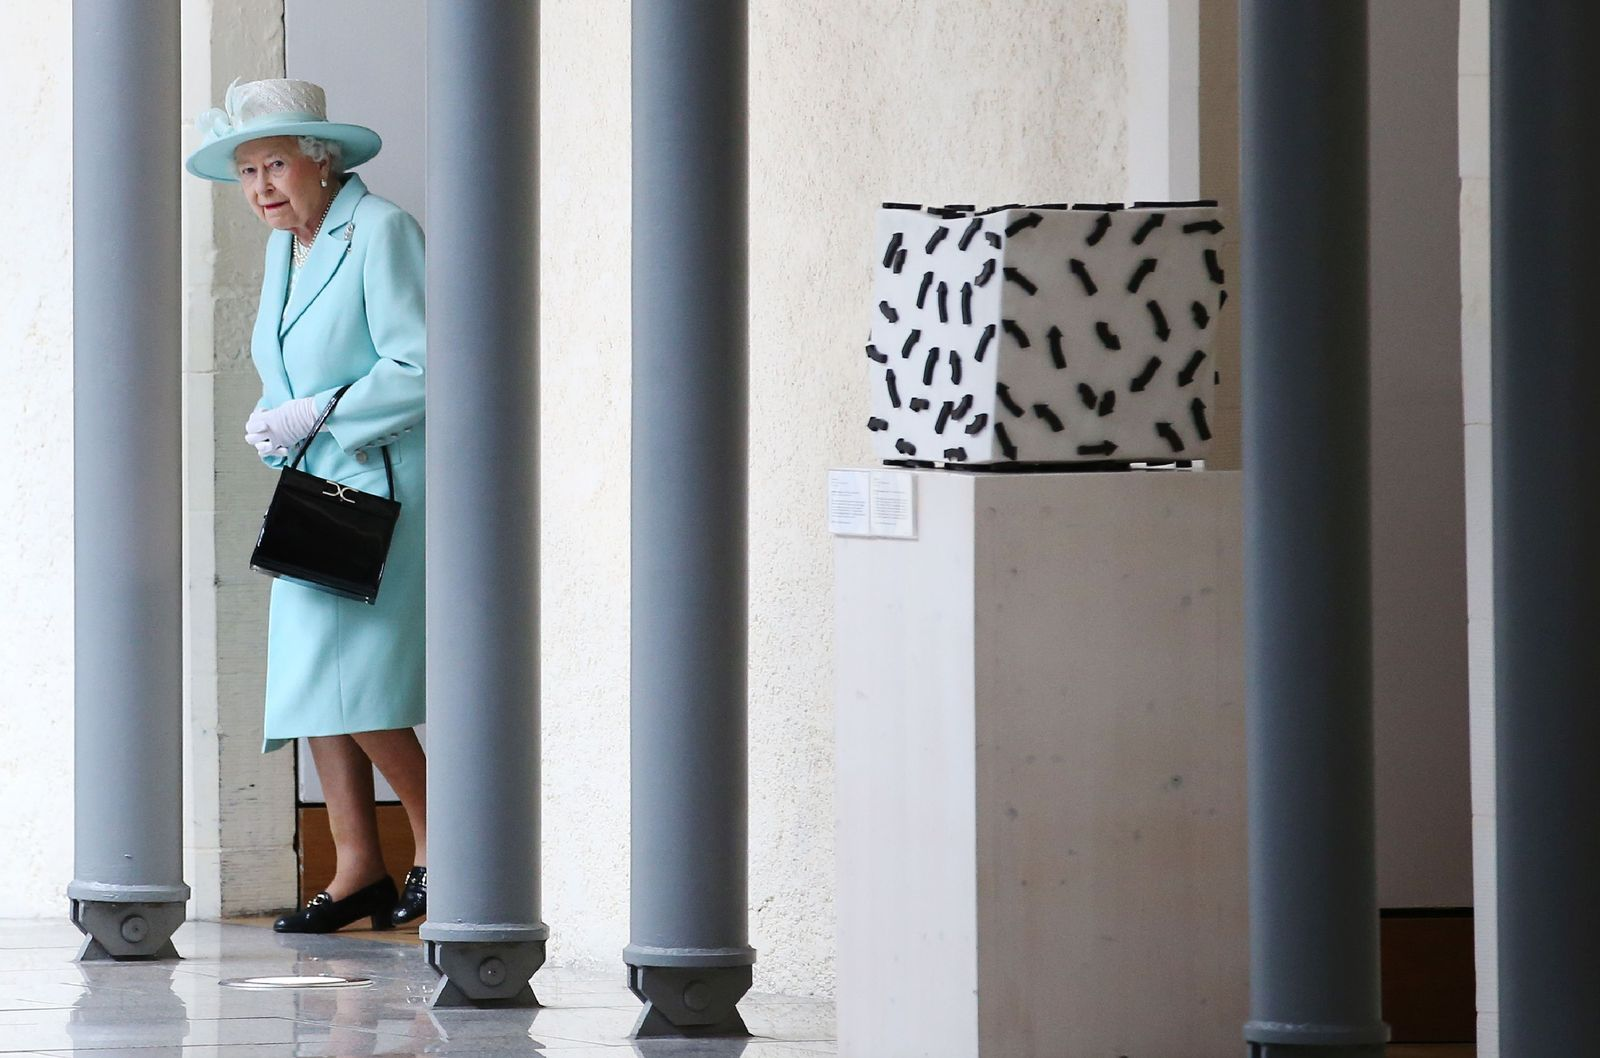 Queen/ BRITAIN-SCOTLAND-ROYALS-POLITICS